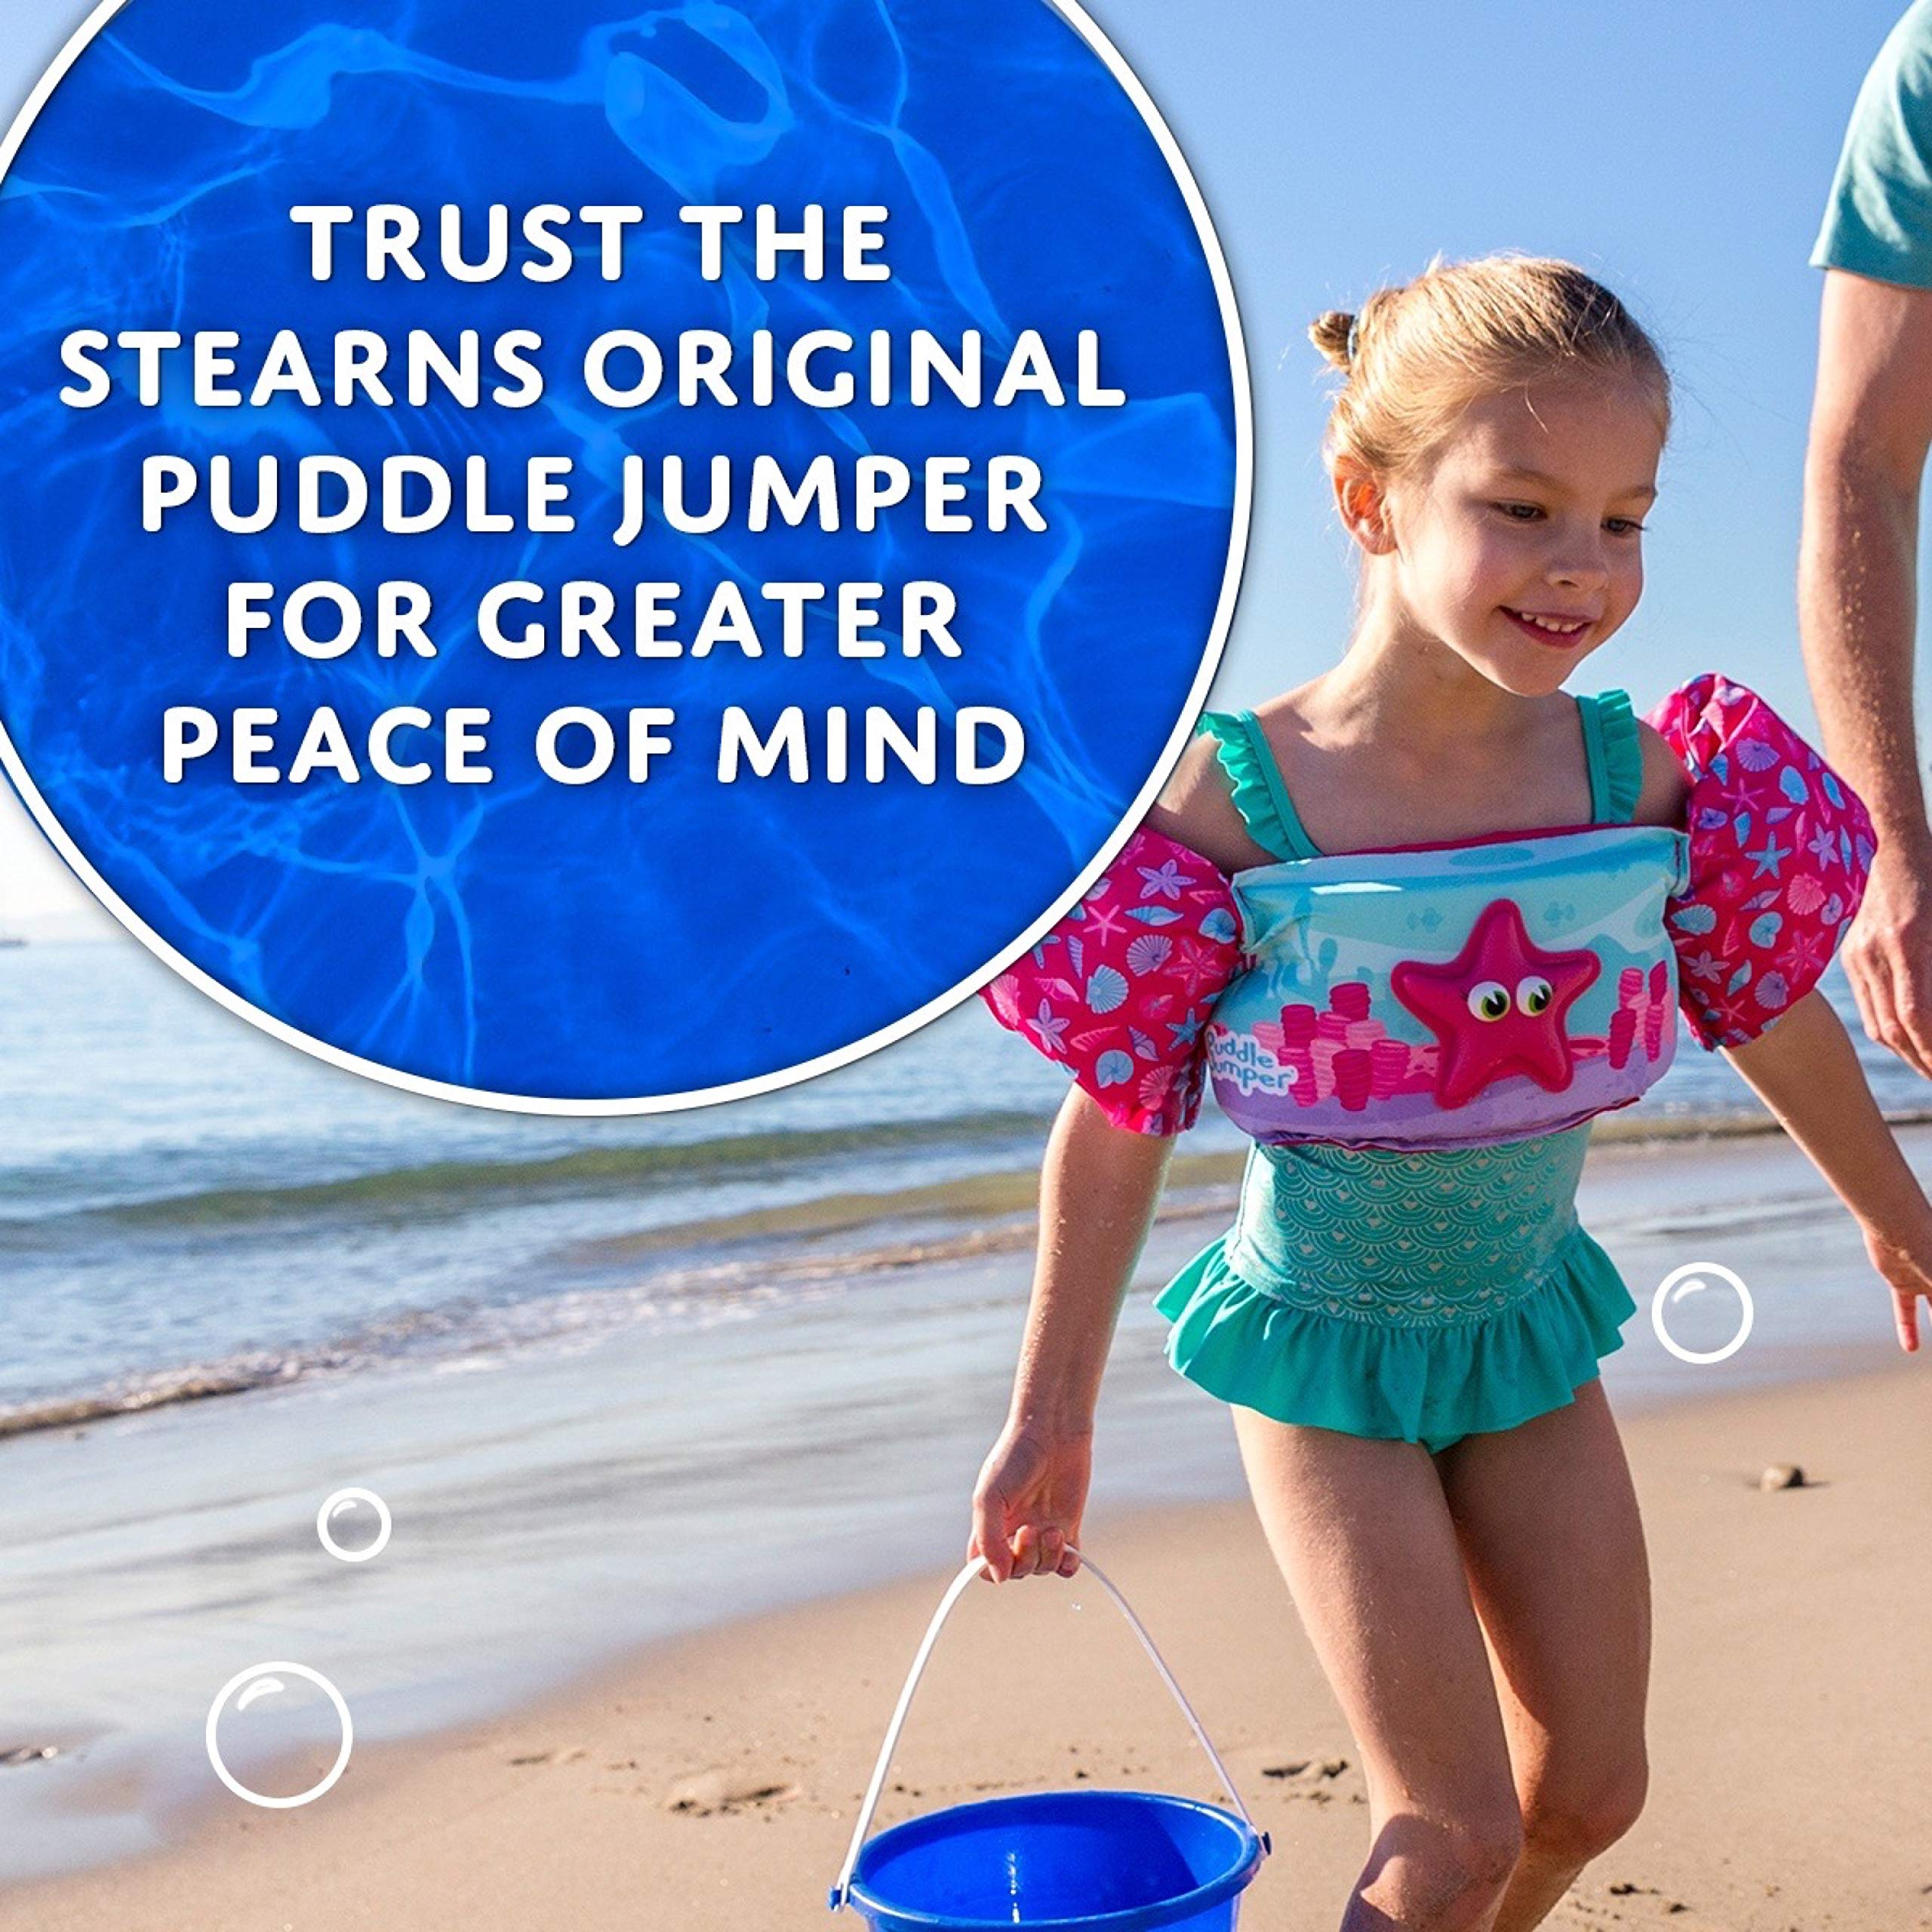 Stearns Original Puddle Jumper Kids Life Jacket   Life Vest for Children  Body Glove Paddle Pals Life Jacket - The Safest U.S. Coast Guard Approved Kids Swim Vest 30 - 50 LBS  Chriffer Kids Swim Vest for 30-50 Pounds Boys and Girls, Toddler Floats with Shoulder Harness Arm Wings for 2,3,4,5,6,7 Years Old Baby Children Sea Beach Pool  AmazeFan Kids Swim Life Jacket Vest for Swimming Pool, Swim Aid Floats with Waterproof Phone Pouch and Storage Bag,Suitable for 30-50 lbs Infant/Baby/Toddler,Children/Sea/Beach  Puoyis Toddler Kids Swim Life Vest, Girls and Boys Swim Vest Swimming Training Life Jacket, Children Swim Vest for Puddle/Beach,Play Like Jumper